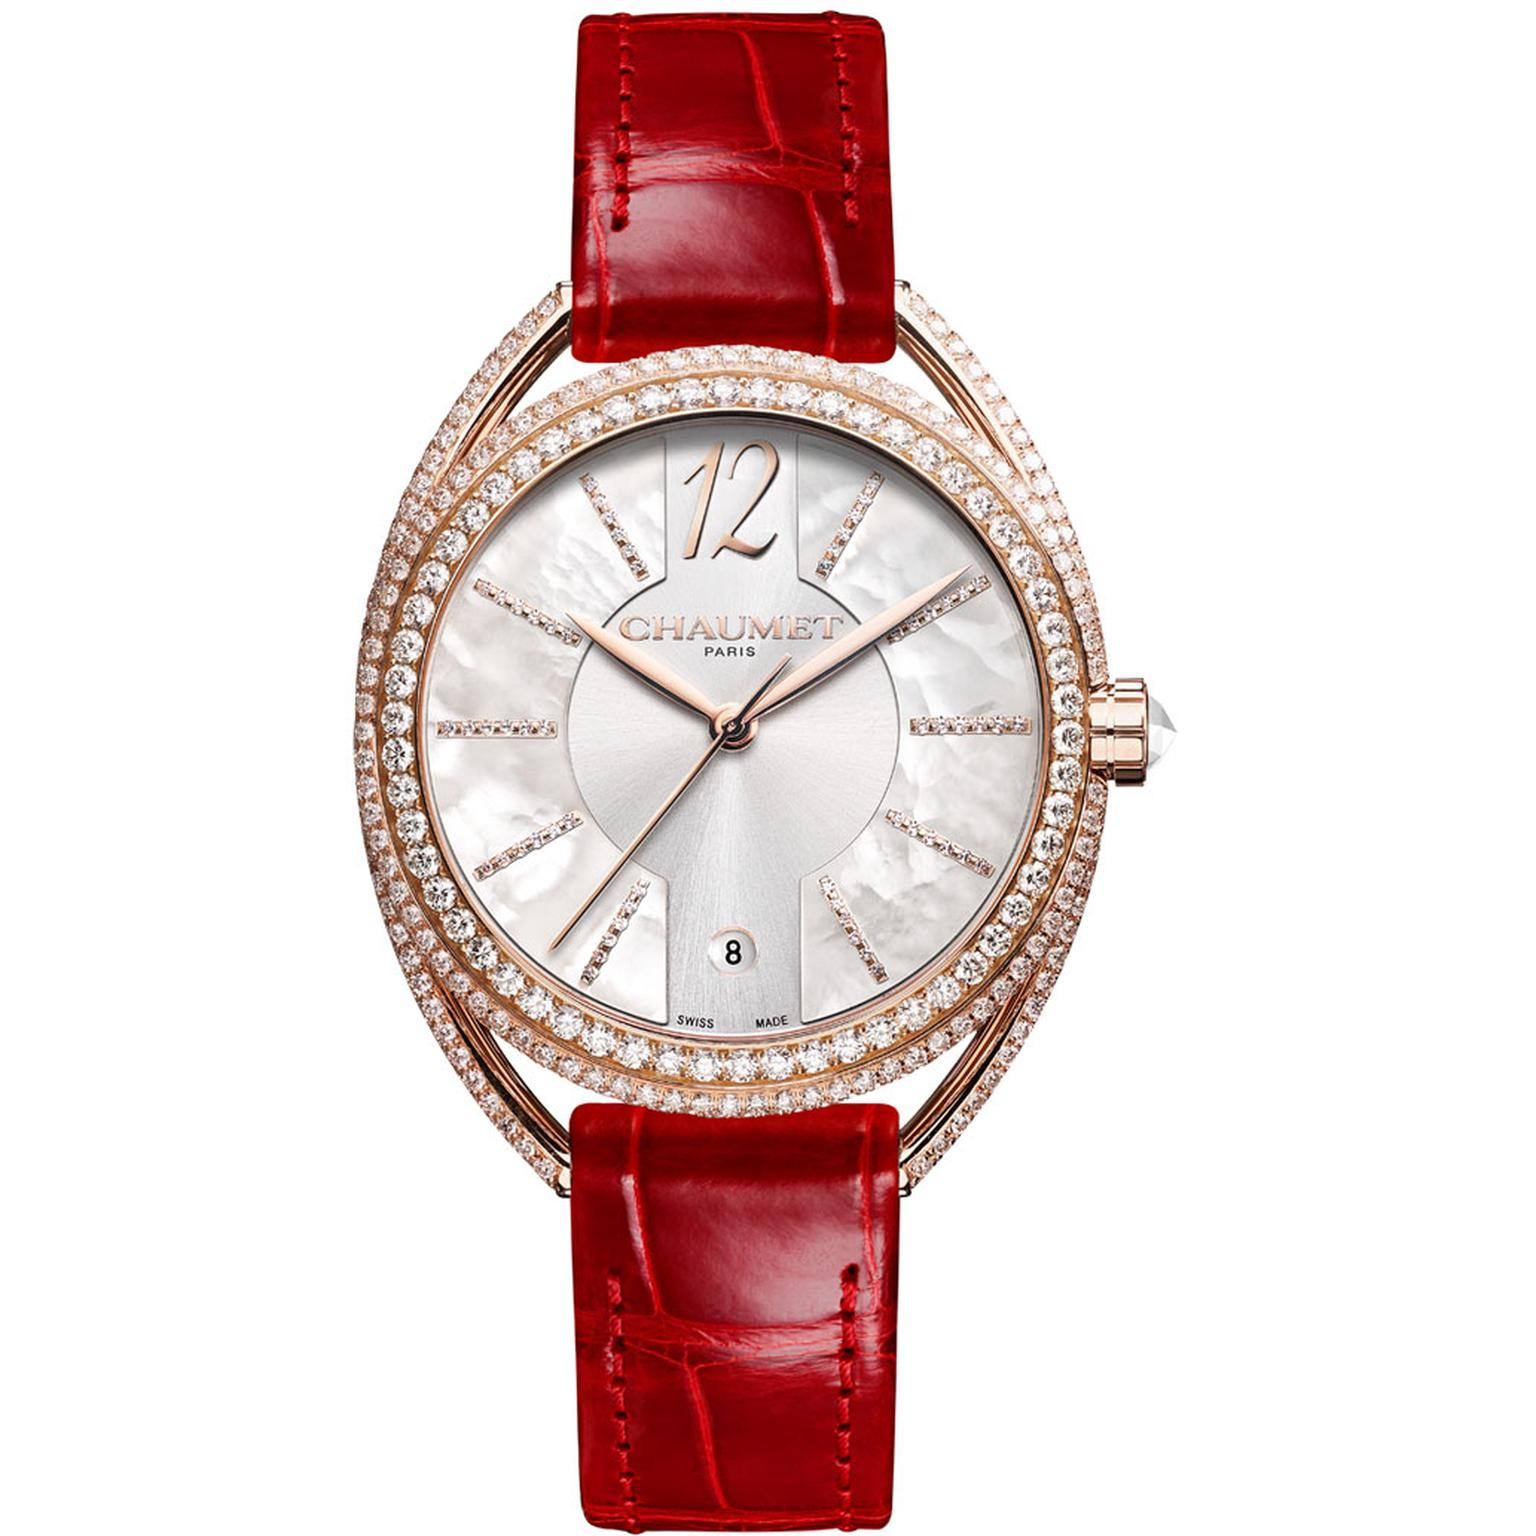 Chaumet Liens Lumière 33mm automatic watch in pink gold with diamonds